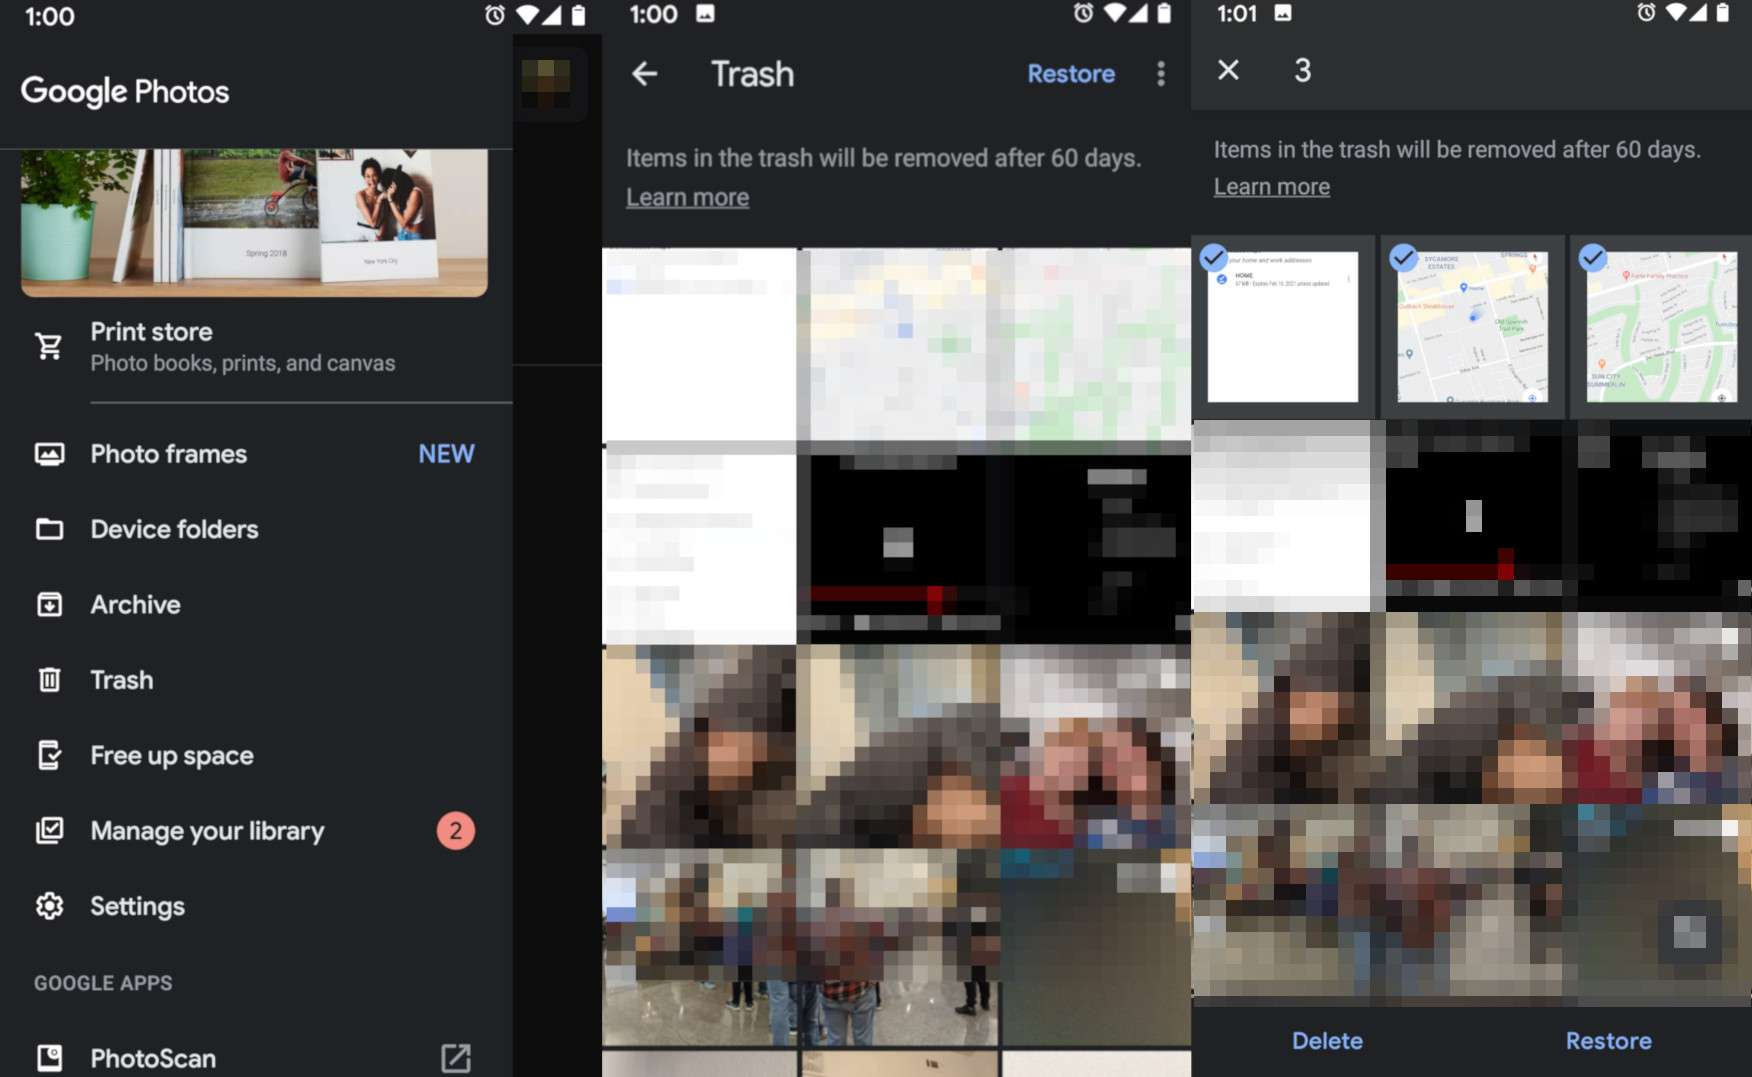 Screenshots depicting how to restore images in Google Photos on Android